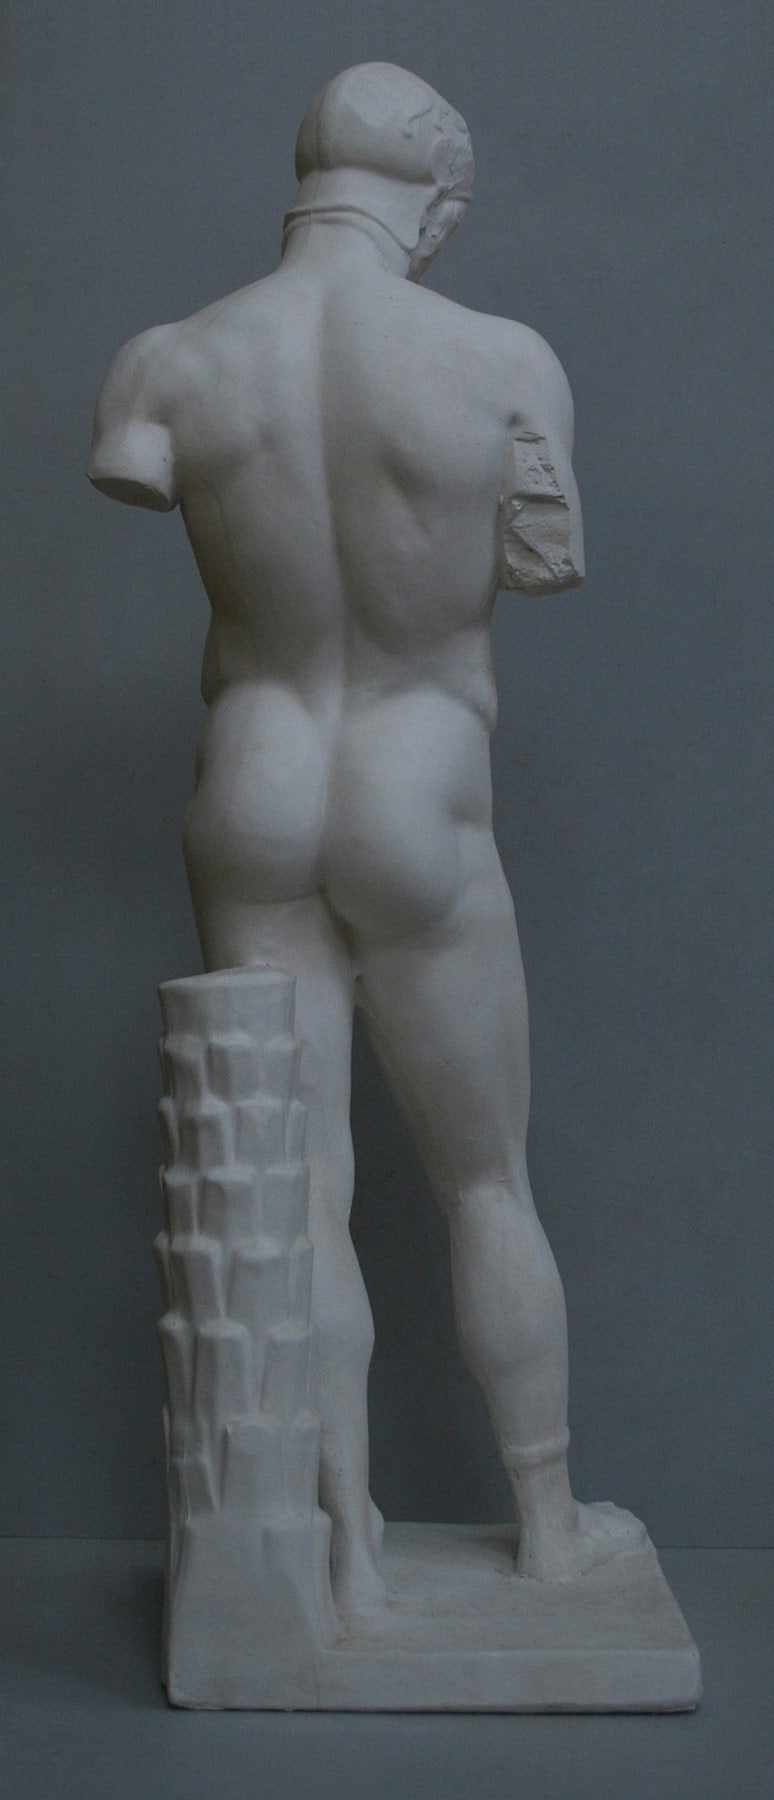 photo of back of plaster cast of sculpture of nude male, namely the god Ares, without arms and wearing a helmet with a supporting tree trunk, on a gray background